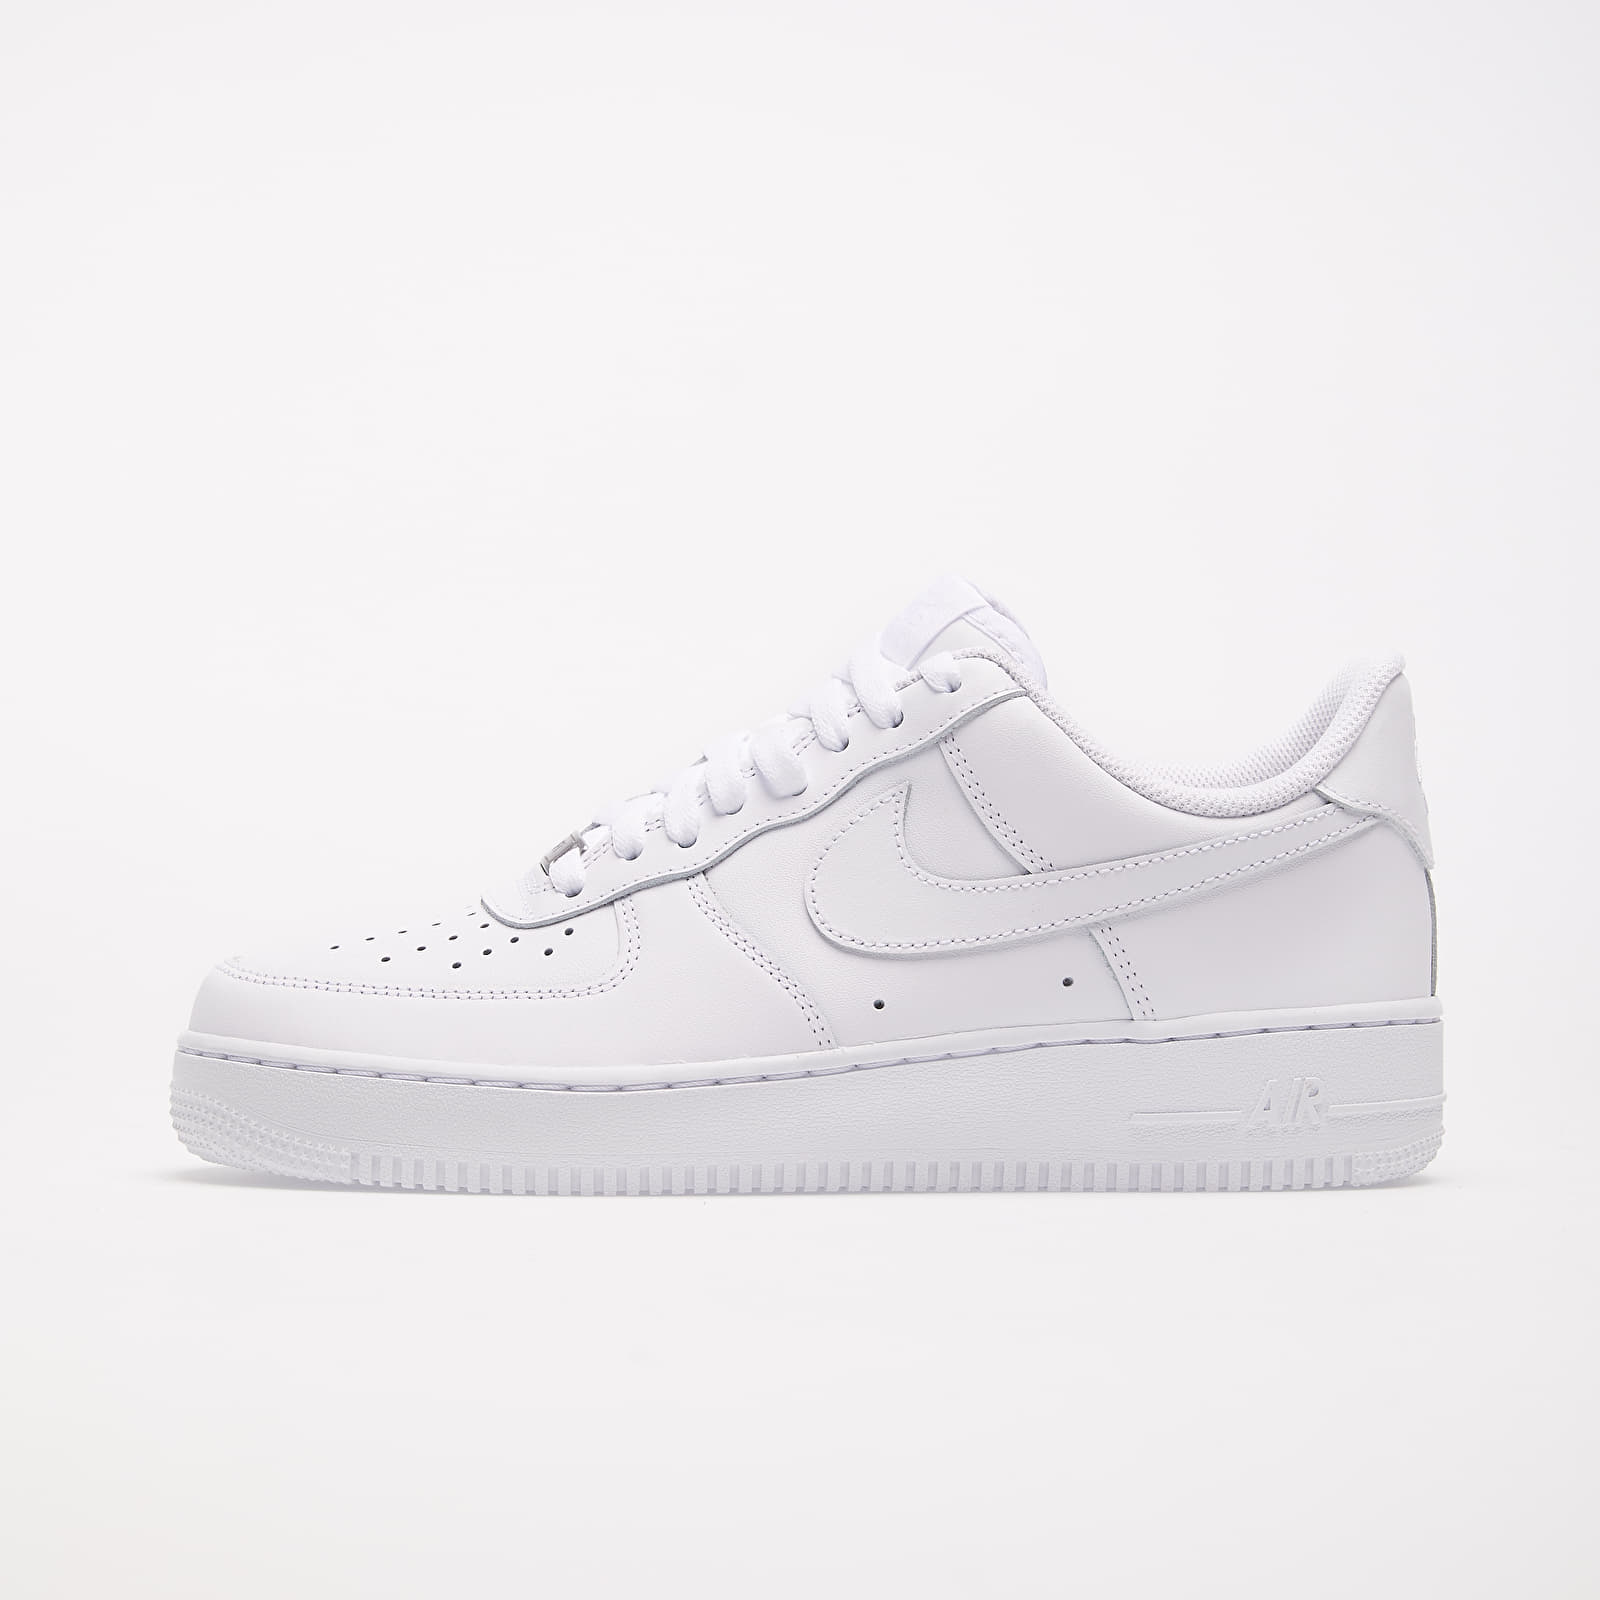 Men's shoes Nike Air Force 1 '07 White/ White